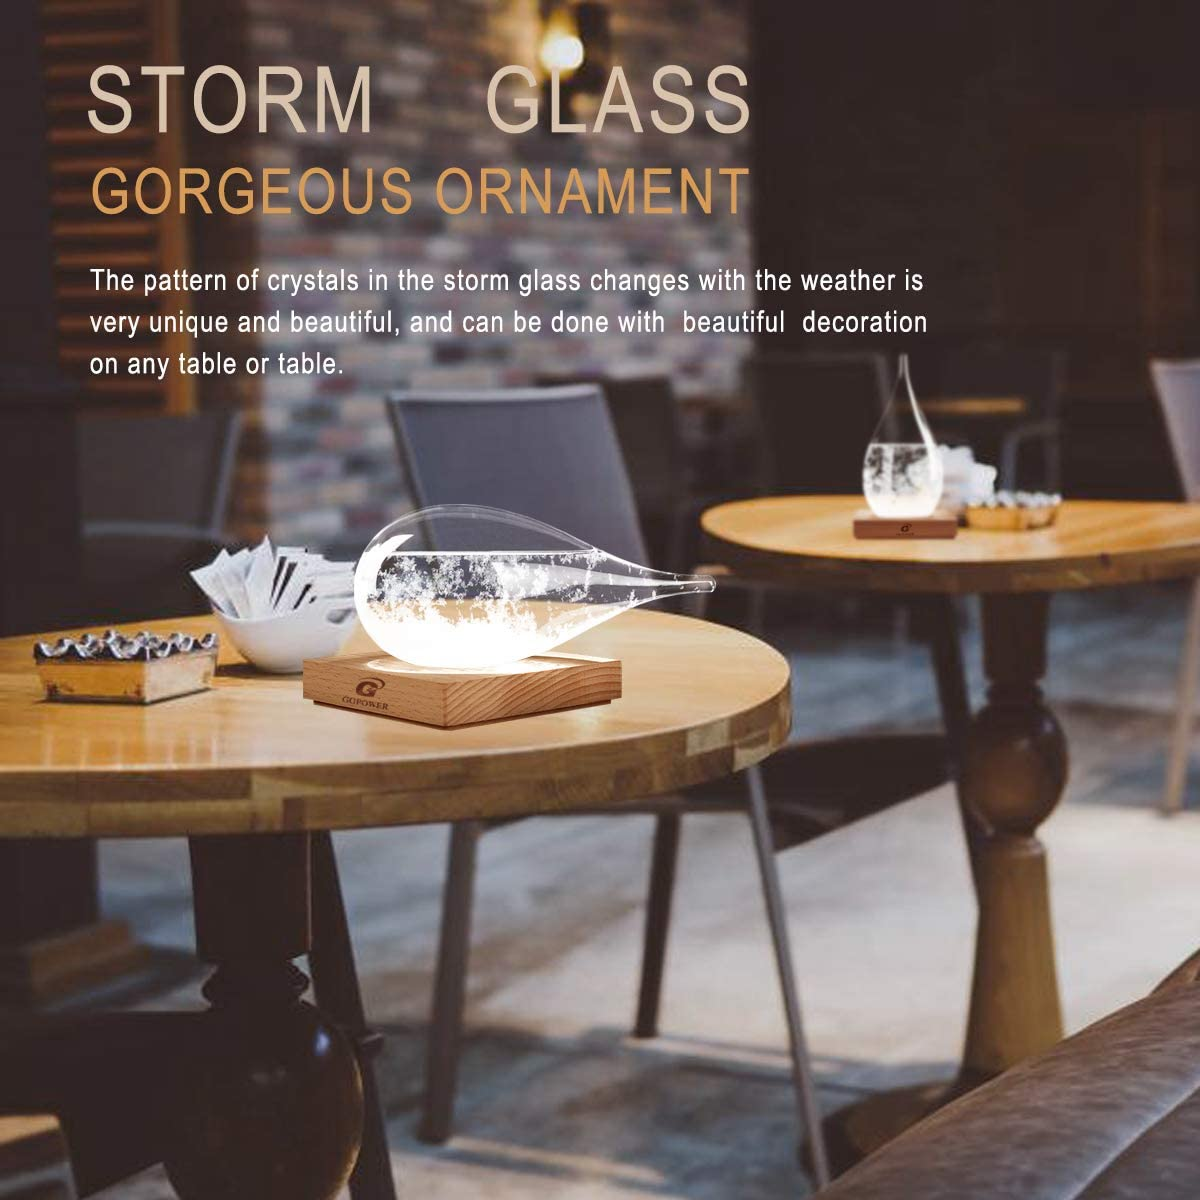 L G GGPOWER Storm Glass Weather Forecast Desktop Fashion Creative Weather Station-Teardrop Weather Forecast Bottle-for Home and Office Decoration